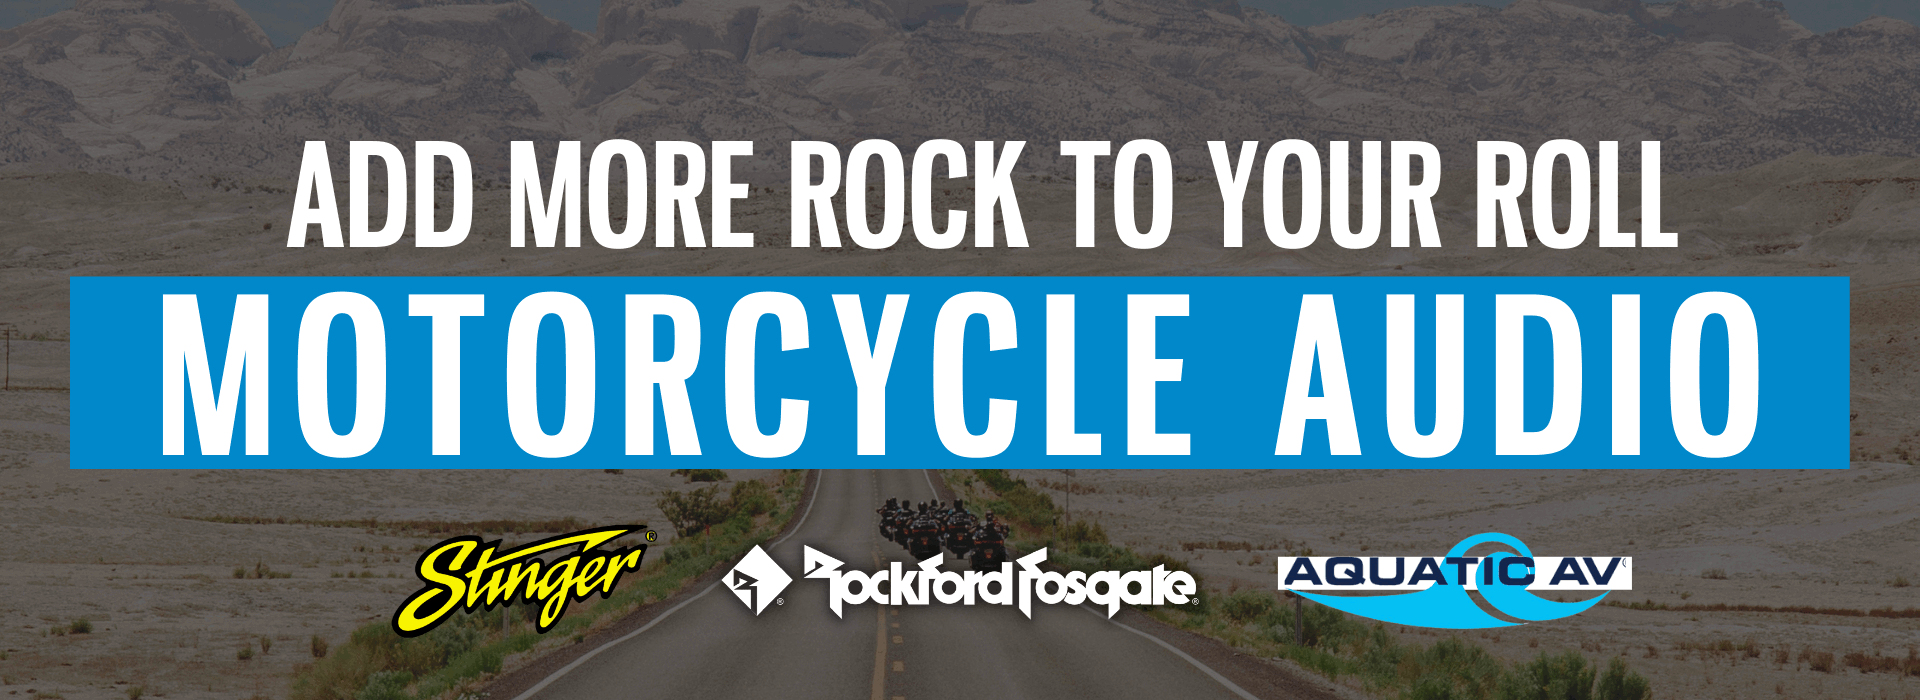 Add more rock to your roll with motorcycle audio